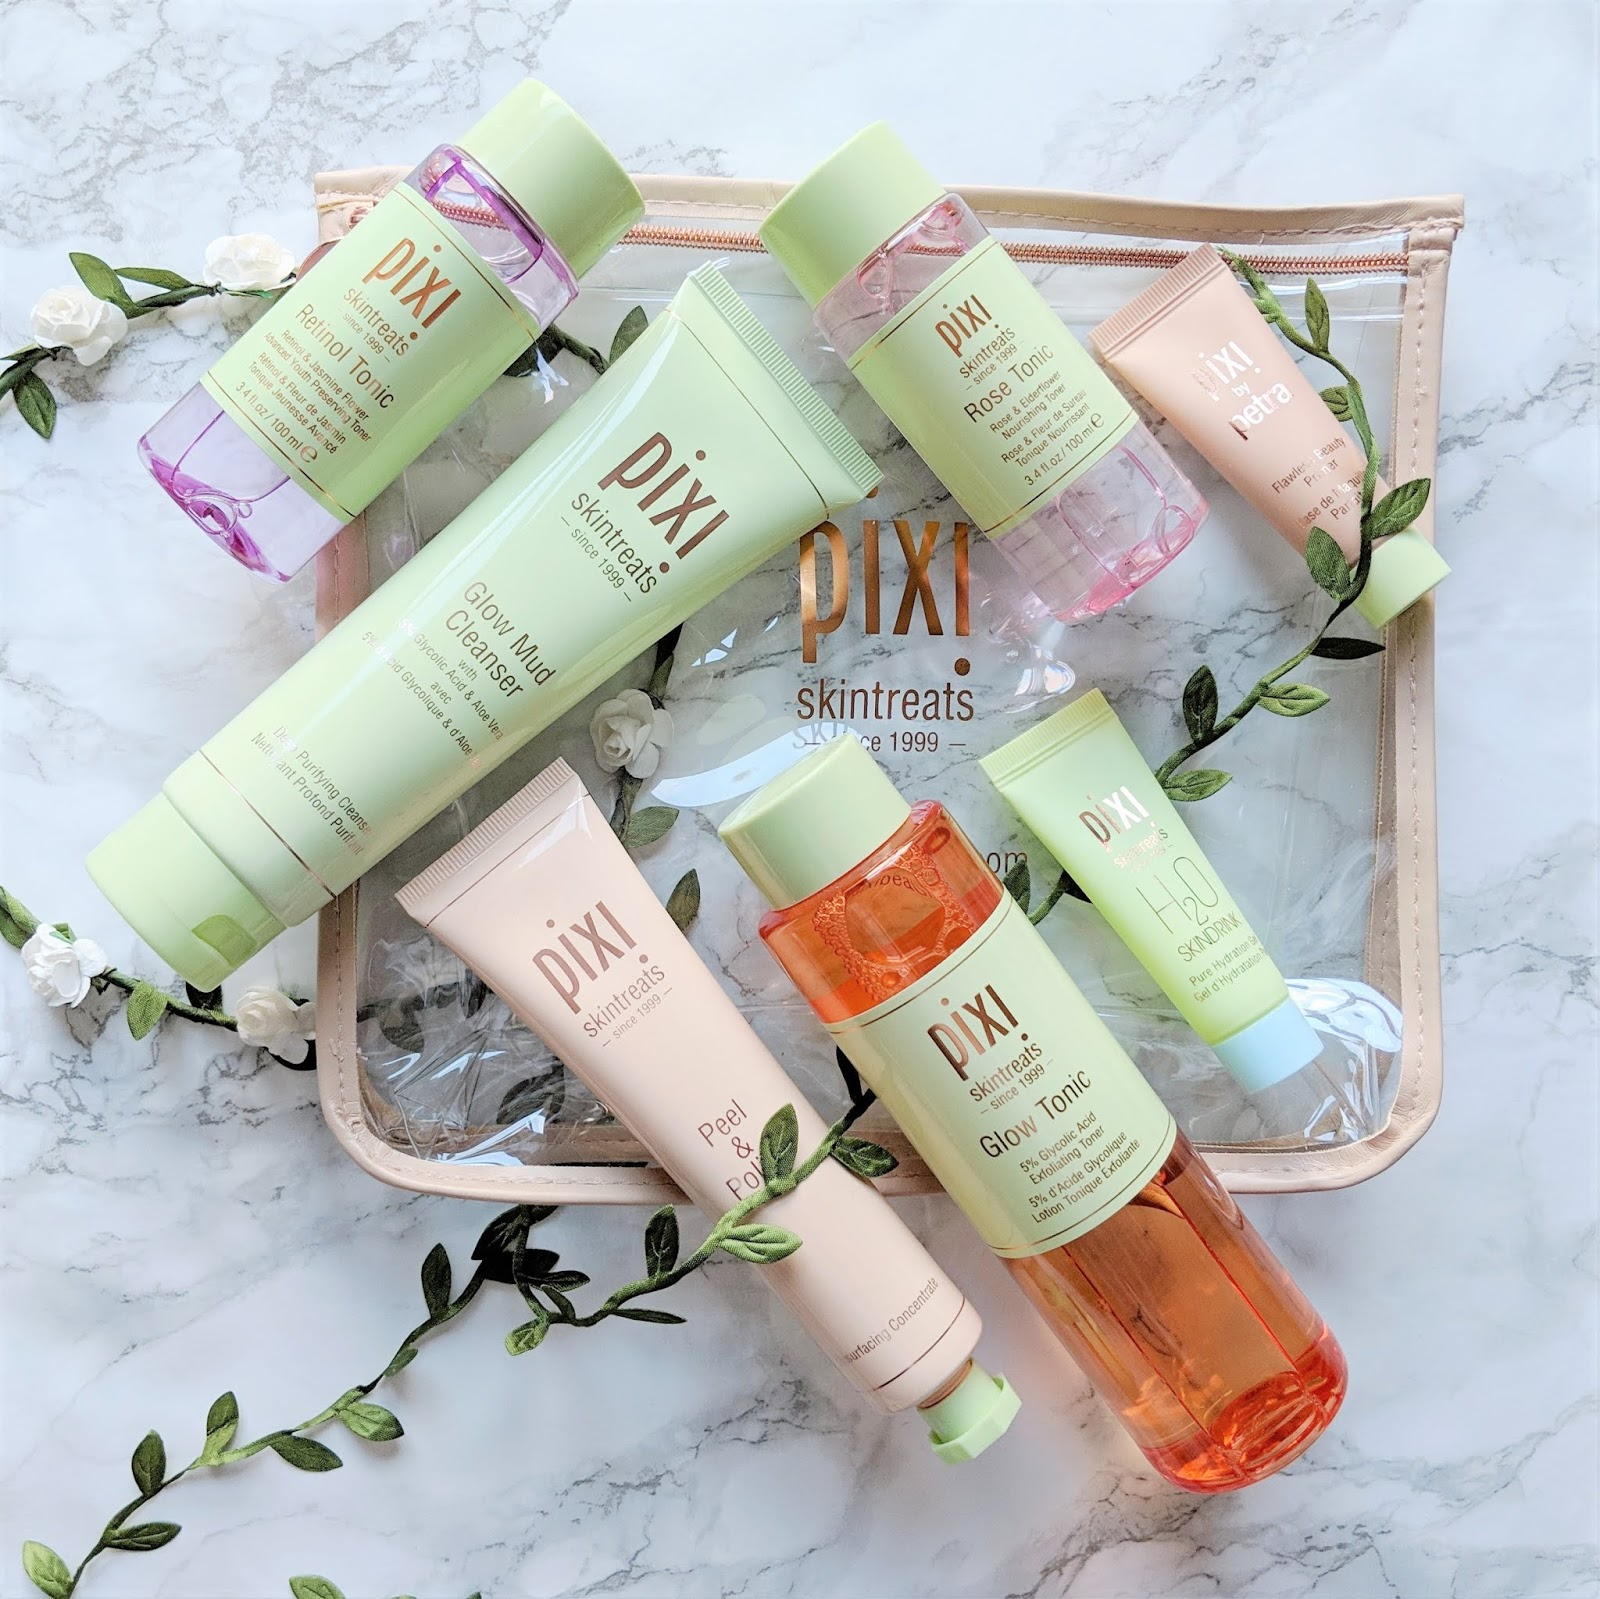 Pixi_Skintreats_My_Collection